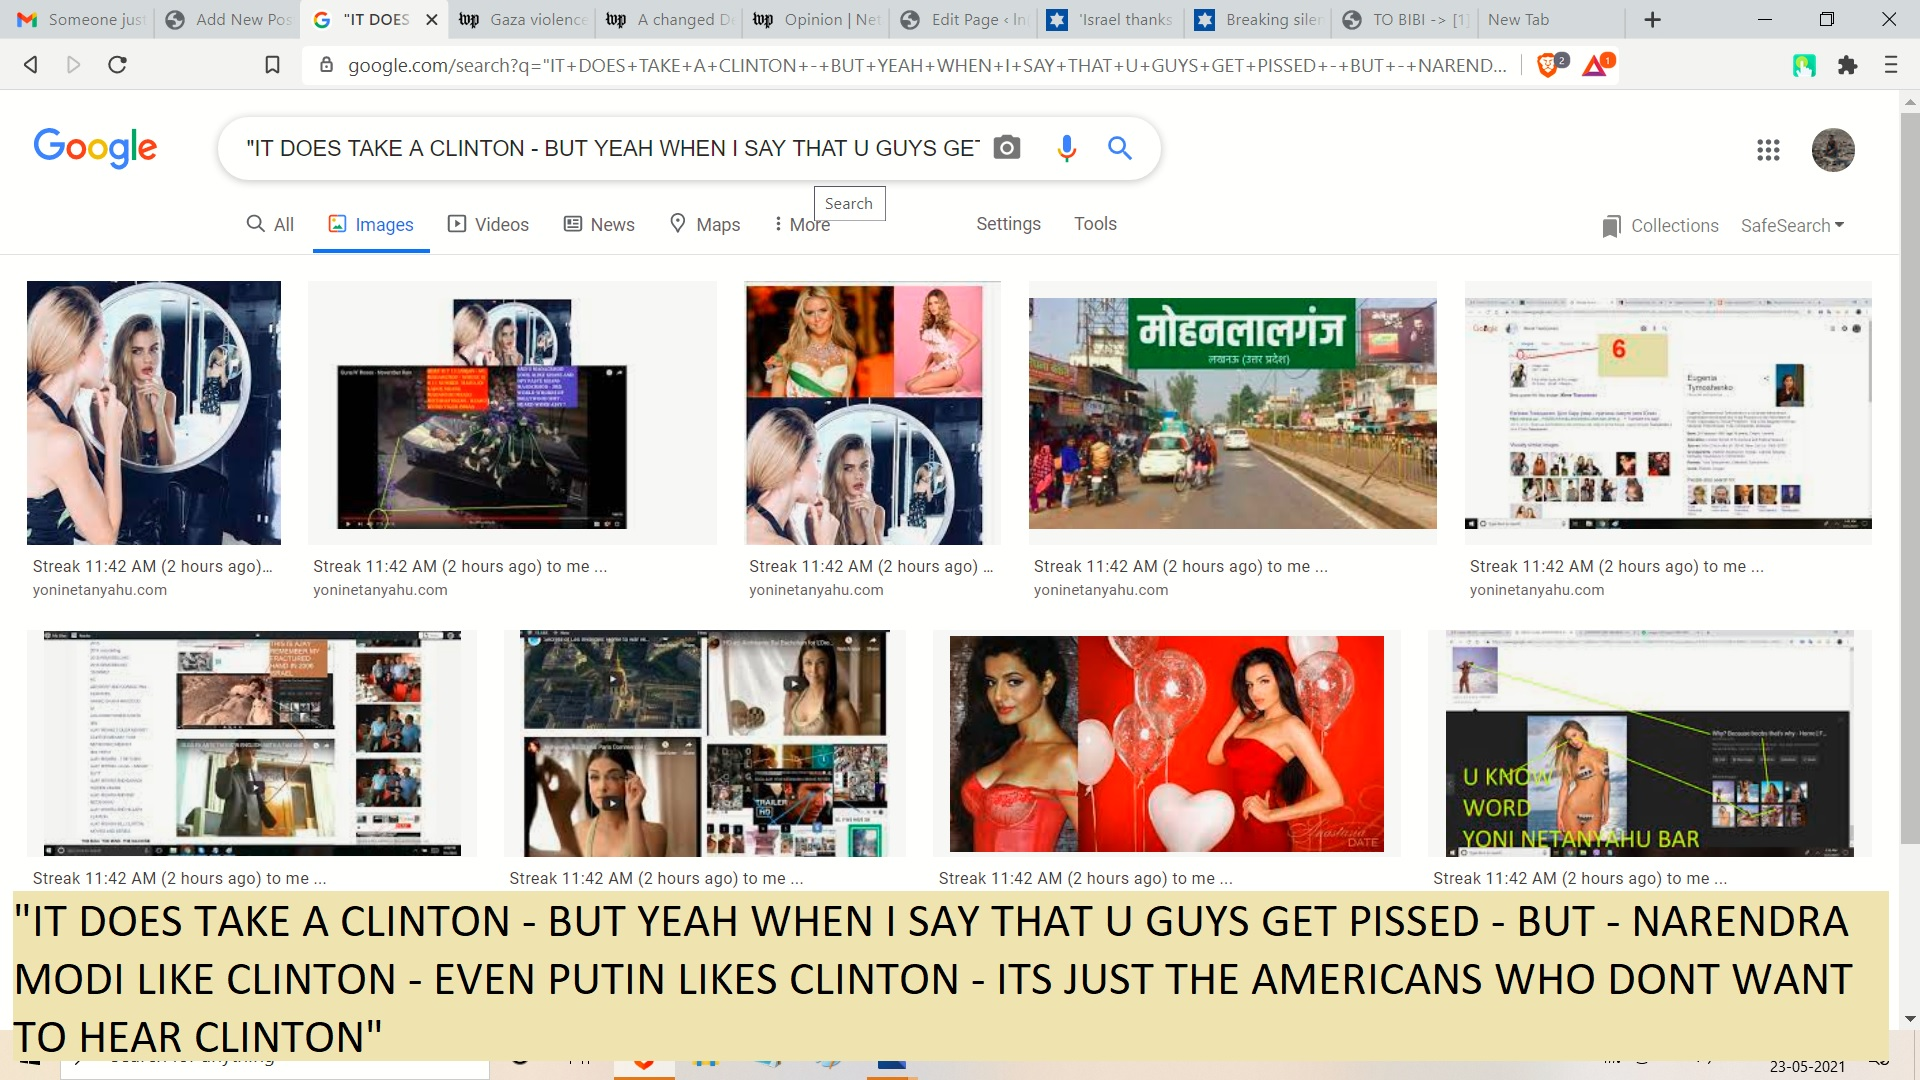 IT DOES TAKE A CLINTON - BUT YEAH WHEN I SAY THAT U GUYS GET PISSED - BUT - NARENDRA MODI LIKE CLINTON - EVEN PUTIN LIKES CLINTON - ITS JUST THE AMERICANS WHO DONT WANT TO HEAR CLINTON